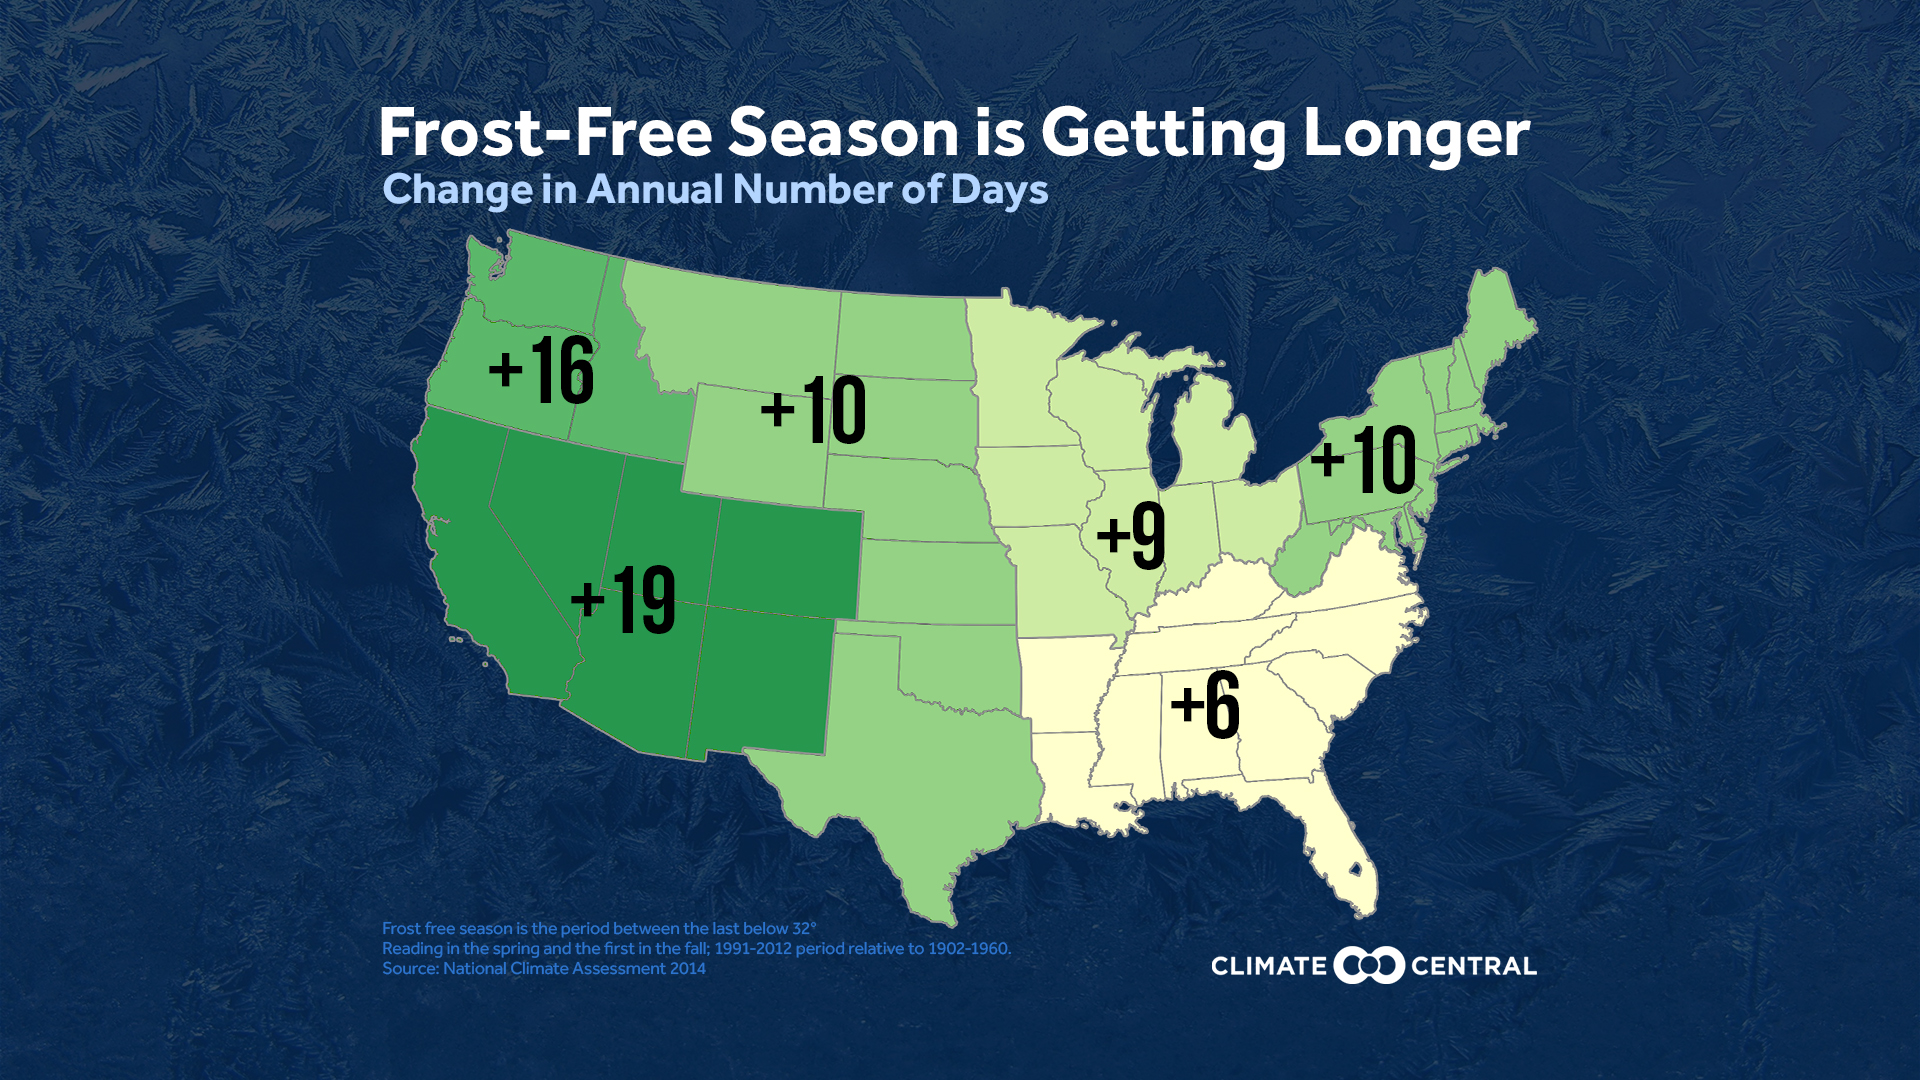 FrostFree Season is Getting Longer Across US Climate Central